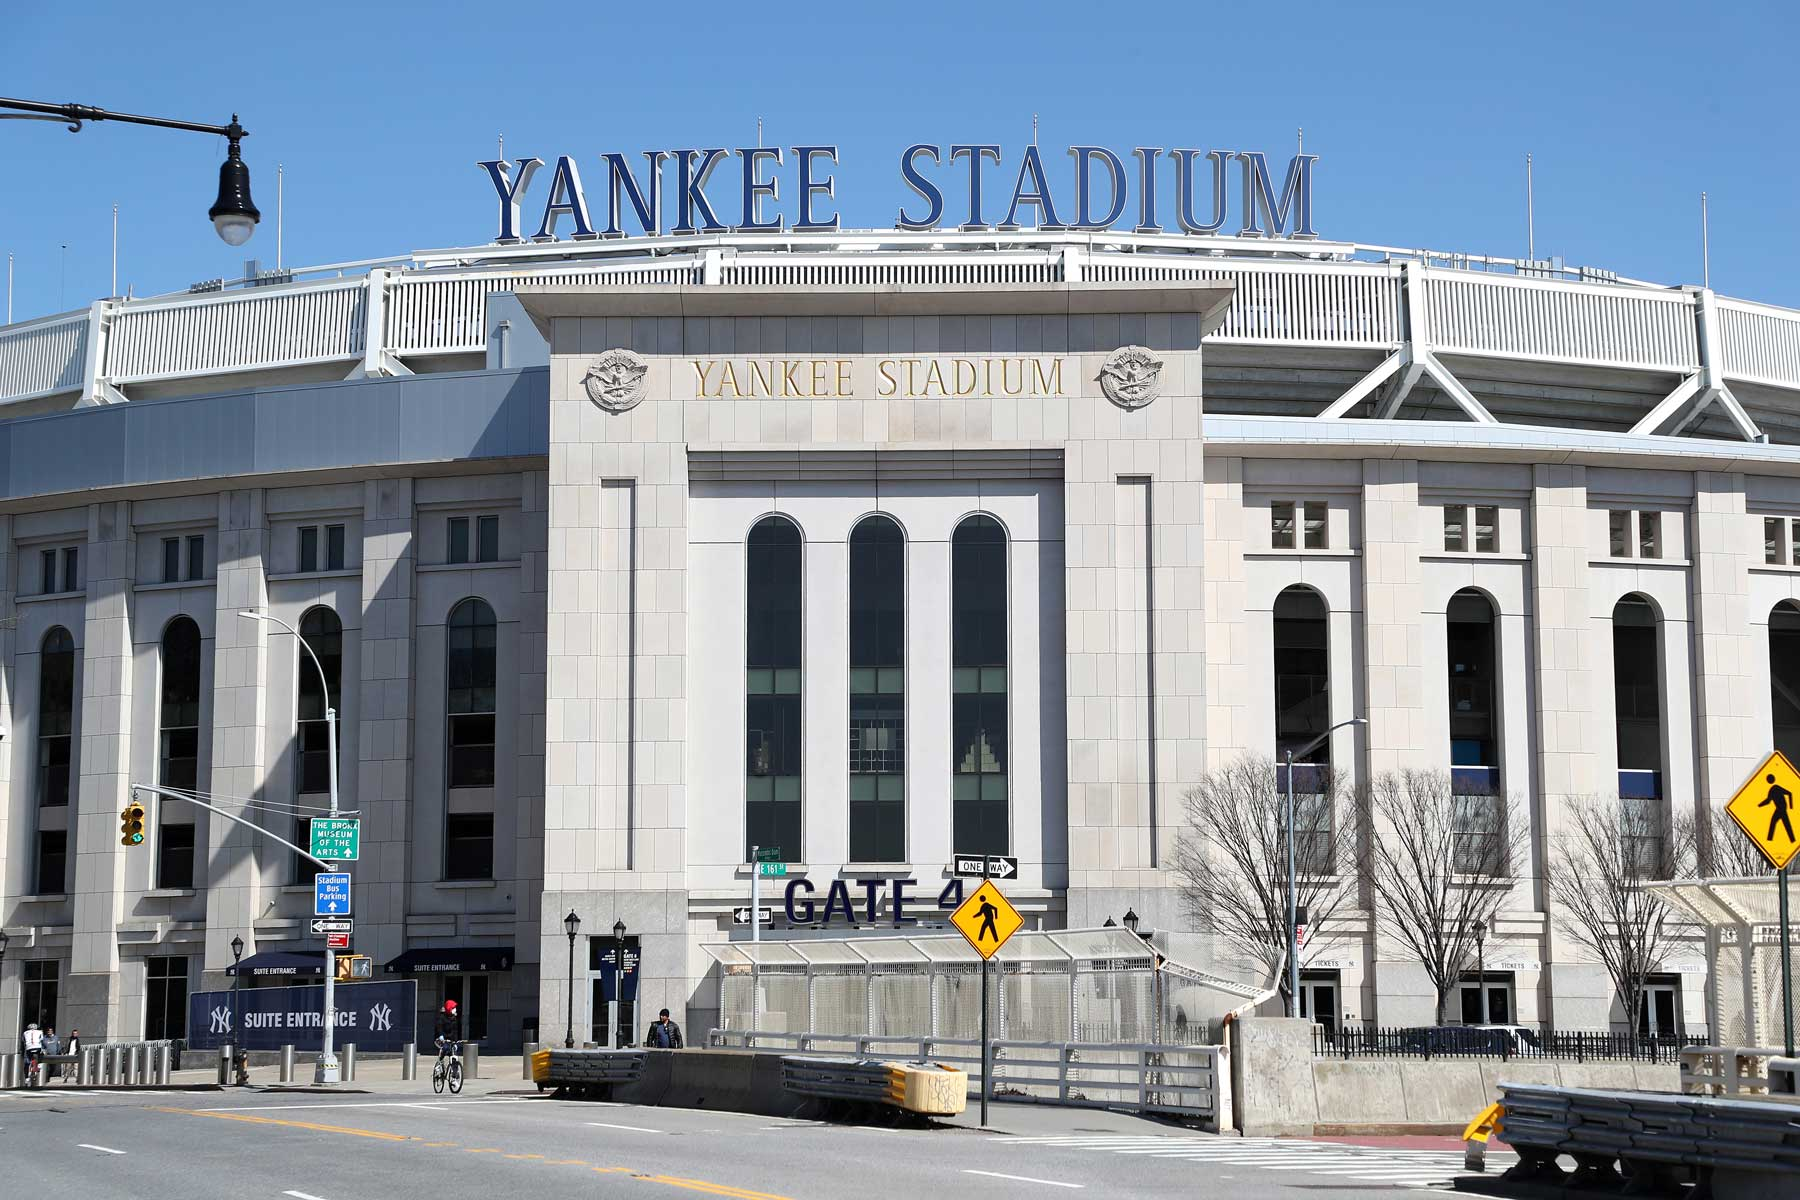 Exterior of Yankee Stadium in the Bronx, New York City